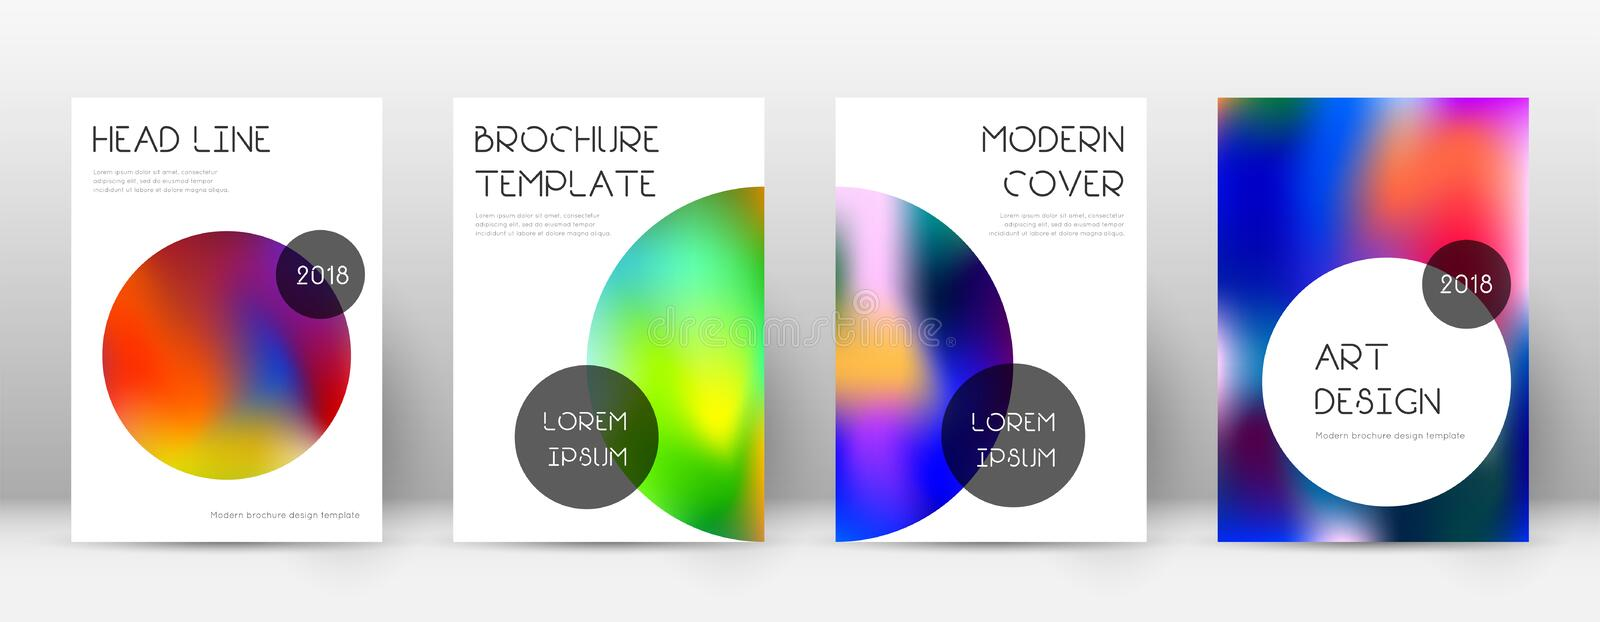 Flyer layout. Trendy popular template for Brochure, Annual Report, Magazine, Poster, Corporate Presentation, Portfolio, Flyer. Beauteous colorful cover page stock illustration